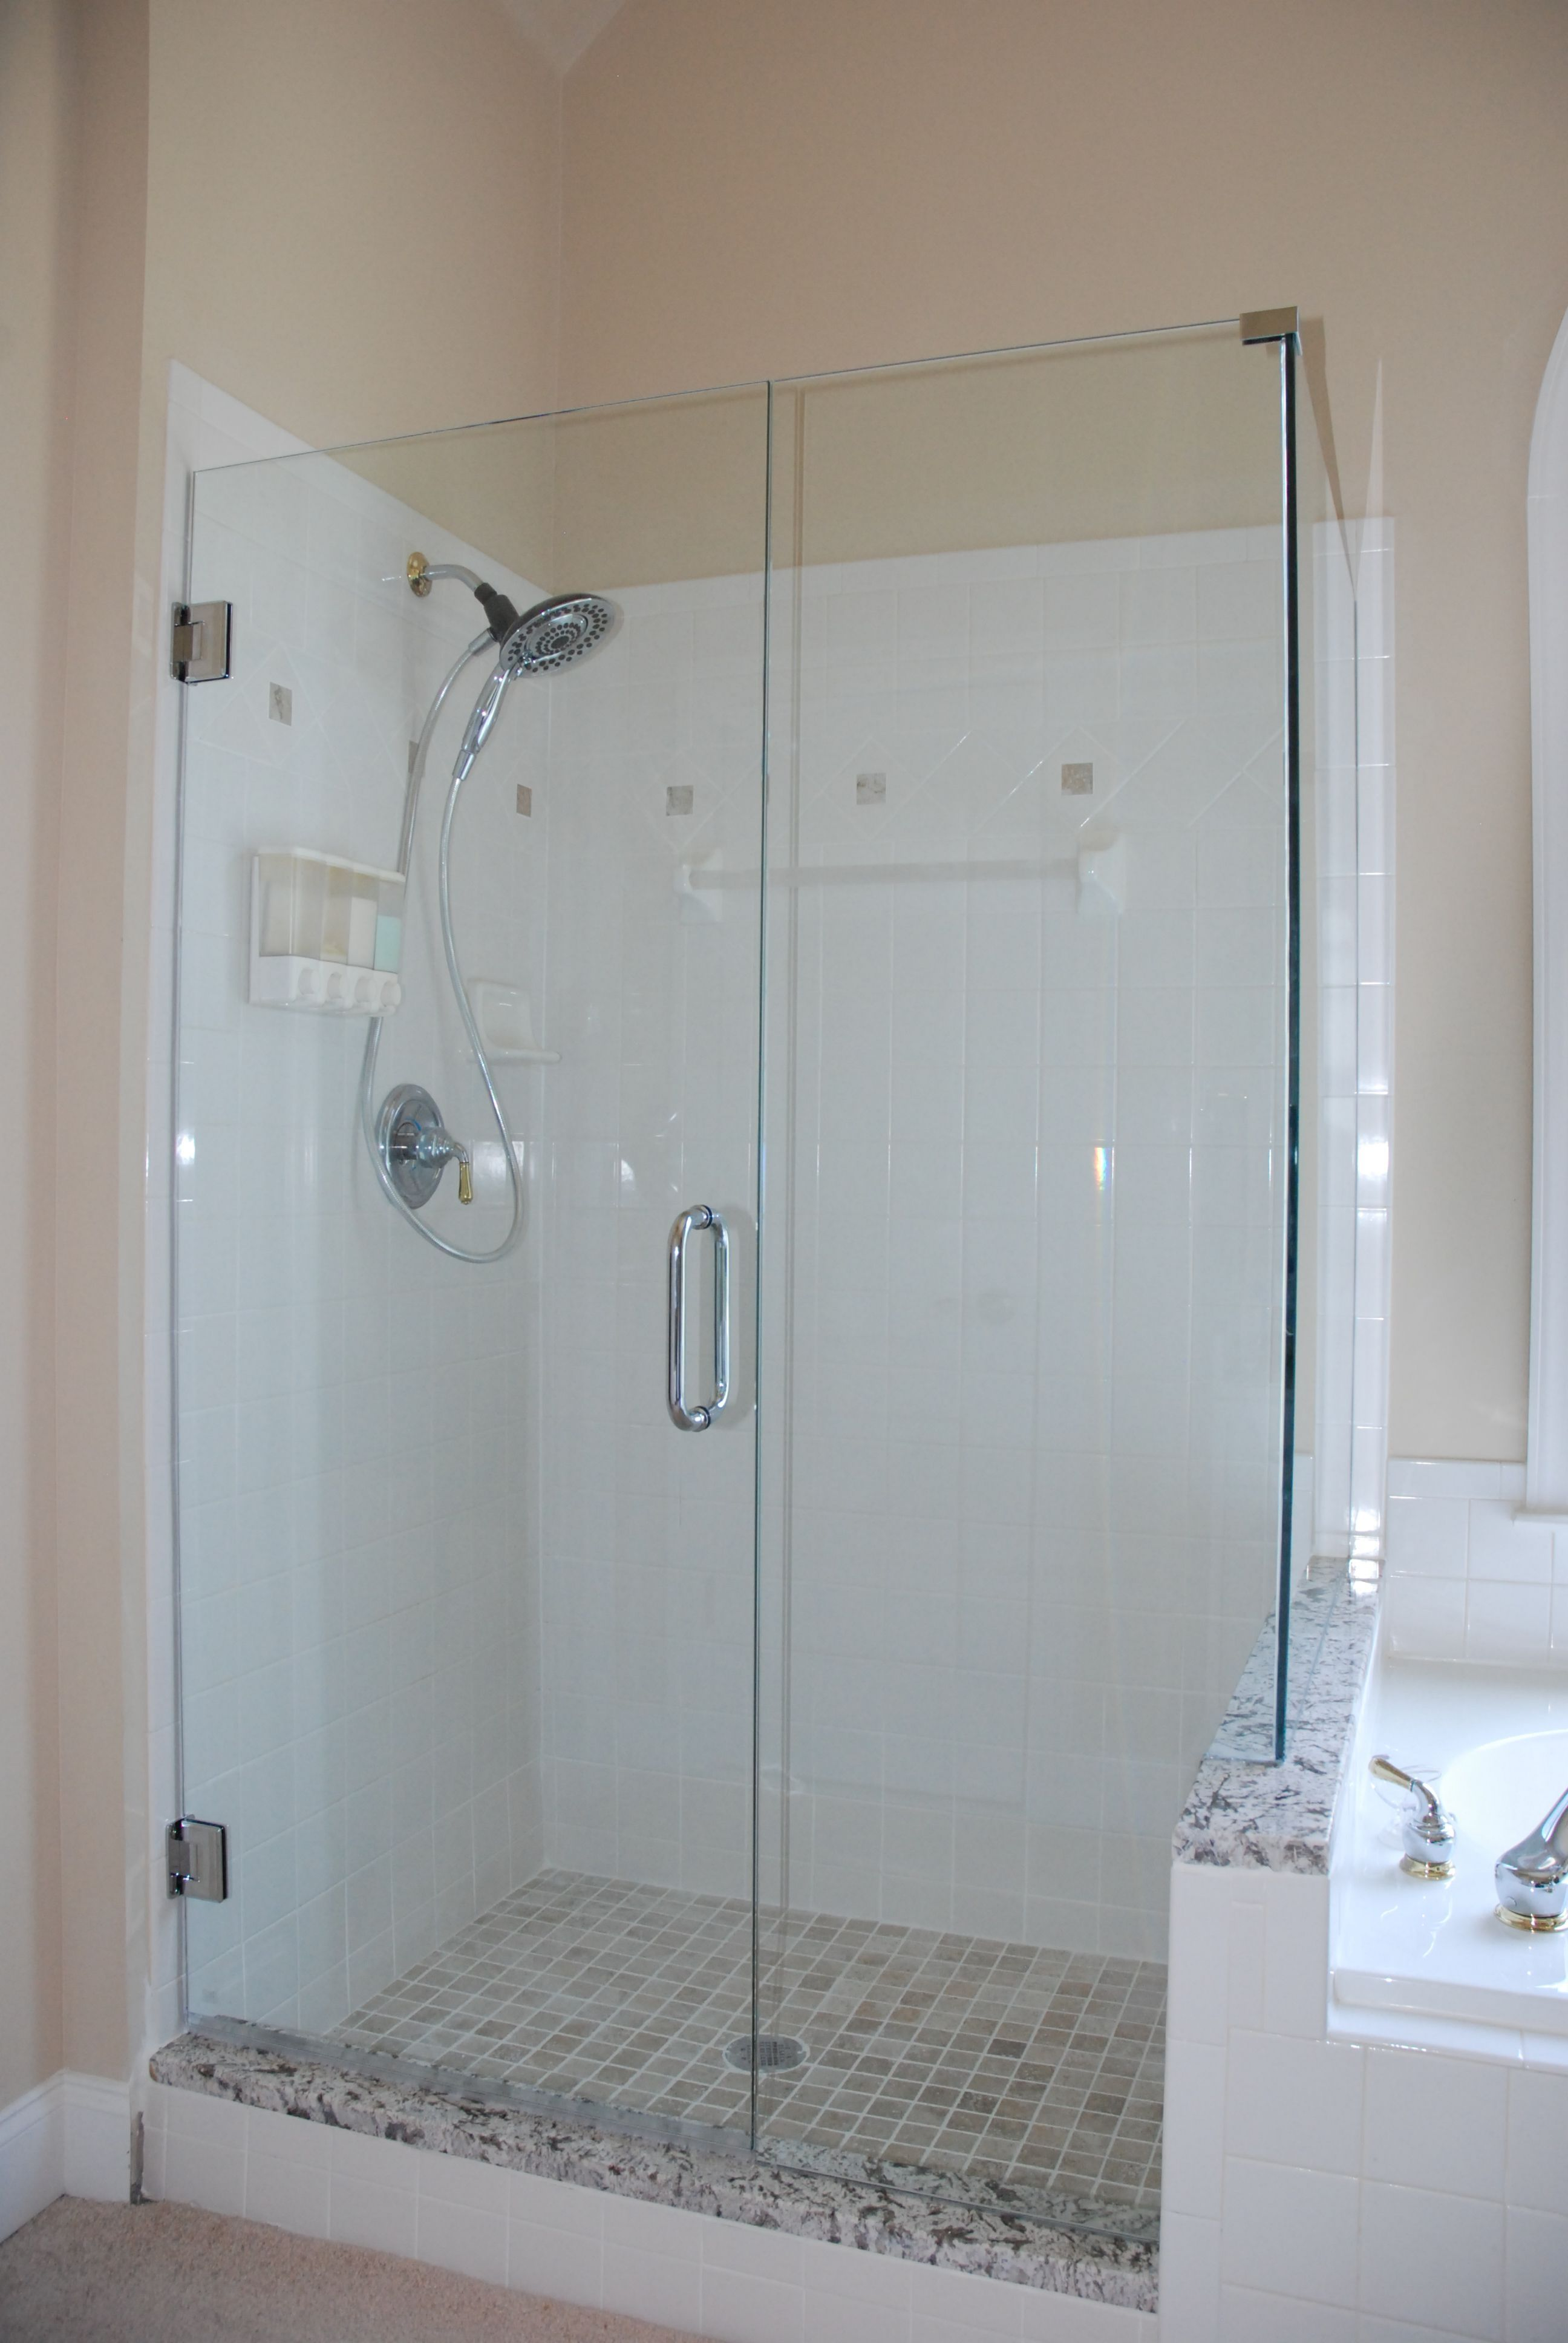 Shower Doors For Small Spaces Httpsourceabl Pinterest